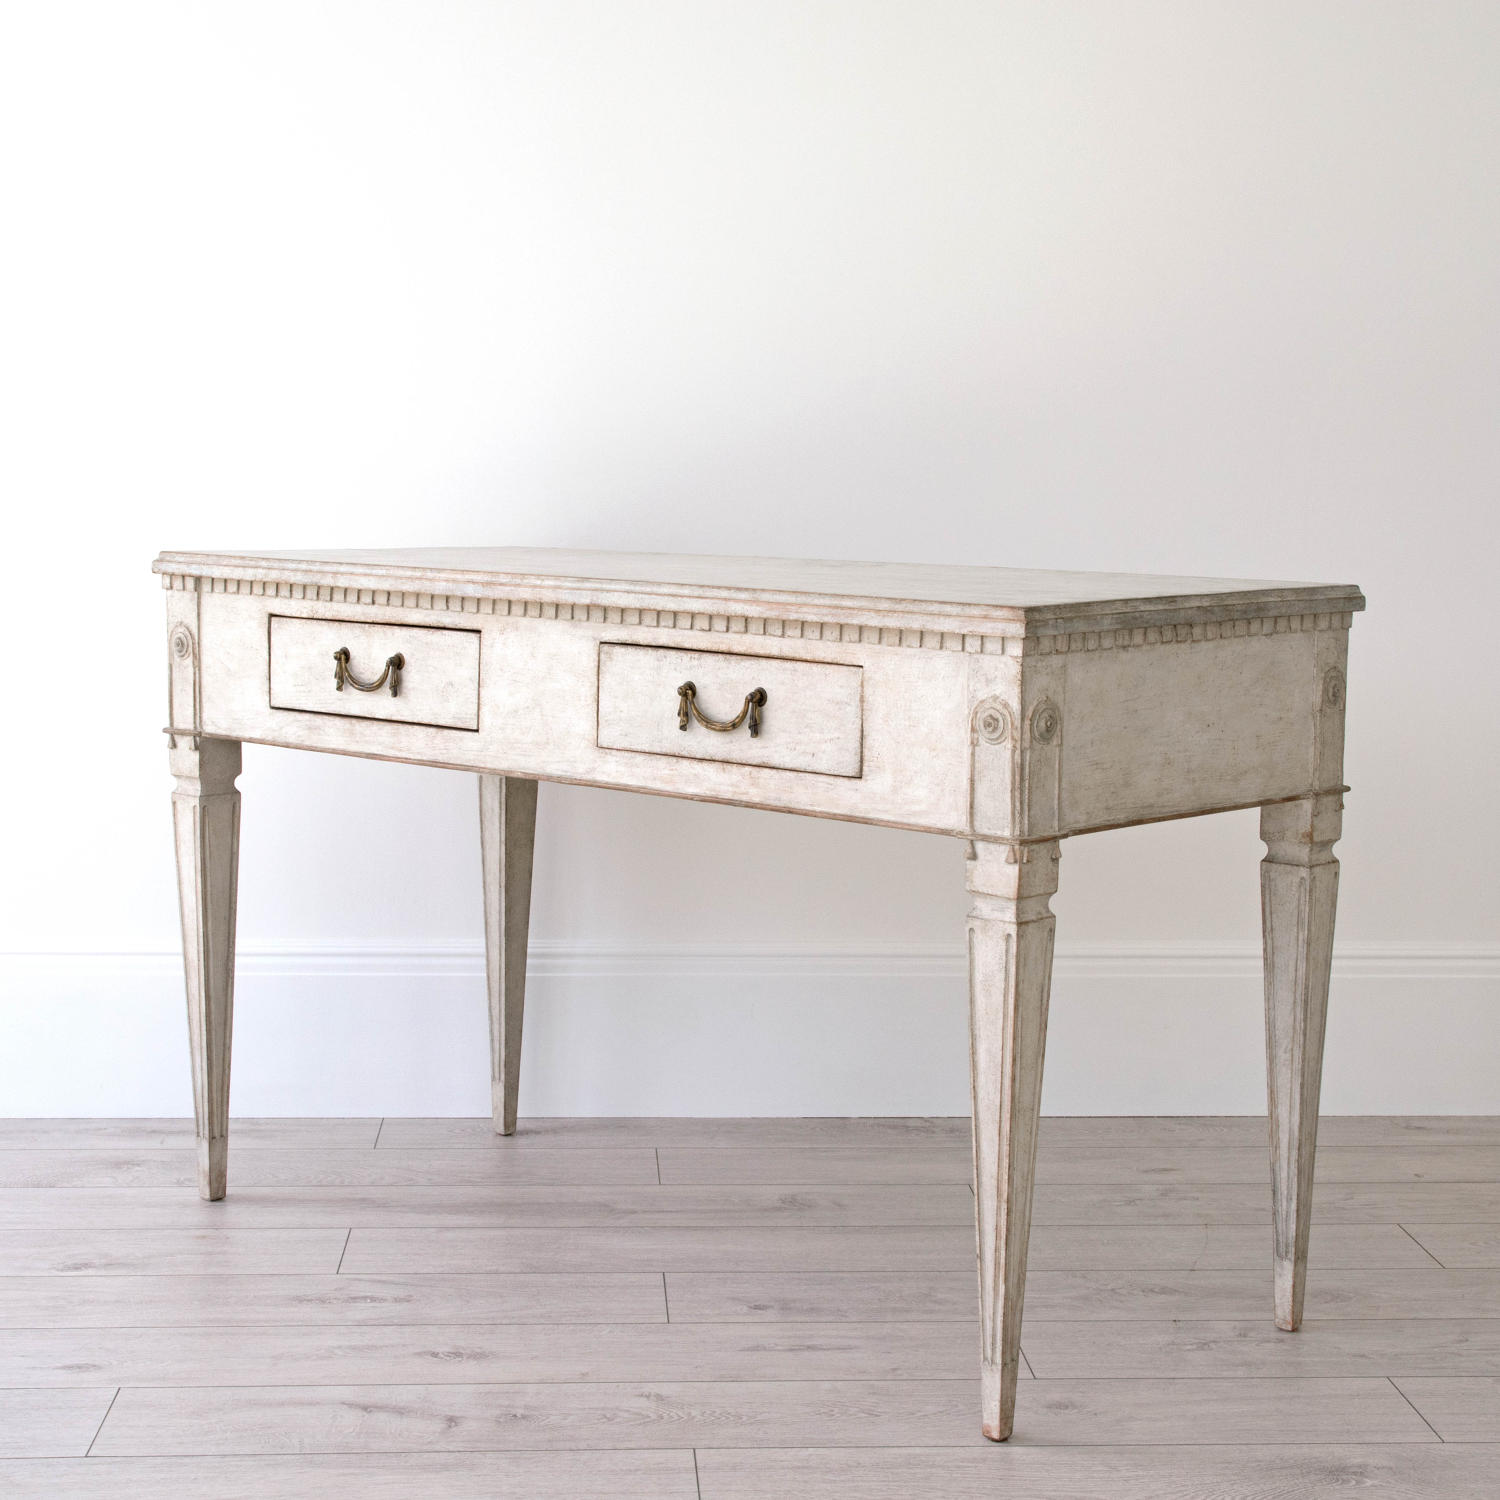 HANDSOME SWEDISH GUSTAVIAN DESK OR CONSOLE TABLE